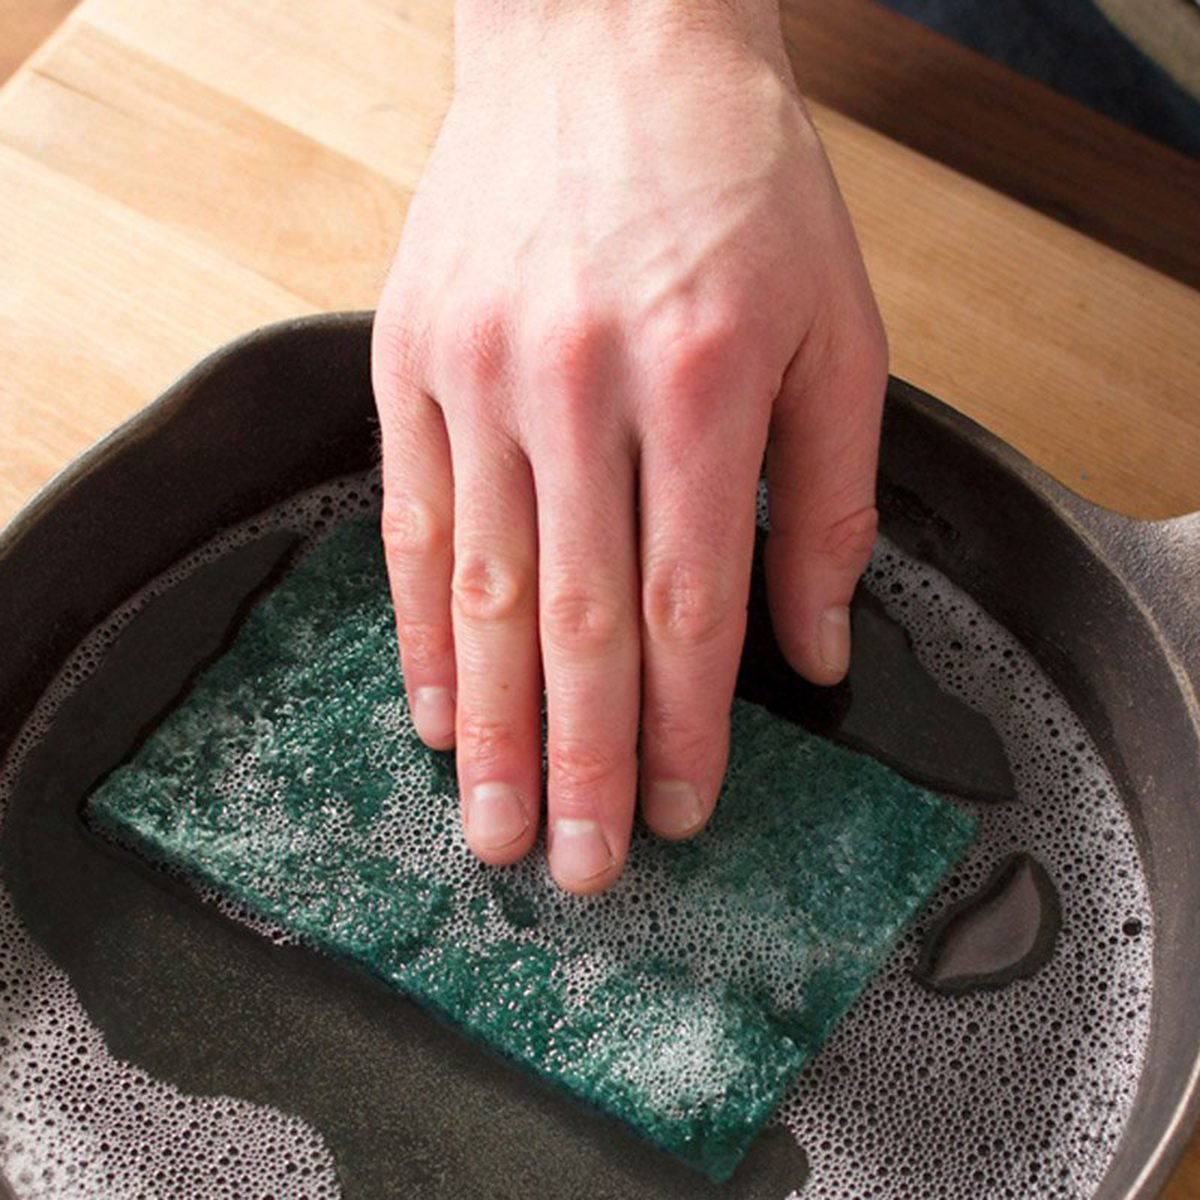 Hand pushing a sponge into a water-filled skillet